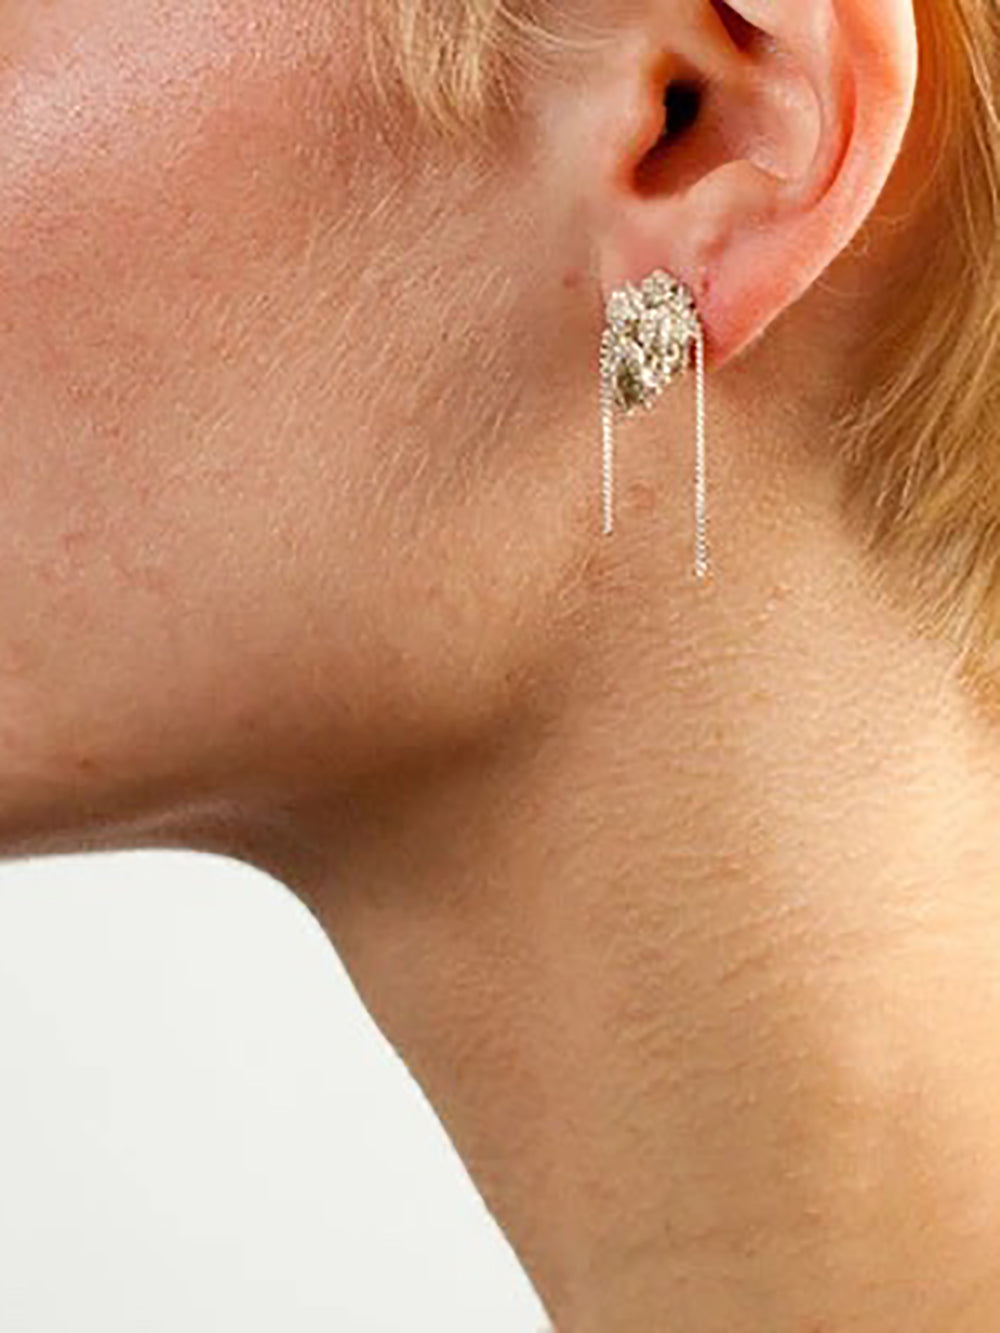 arielle de pinto bead earrings in haze